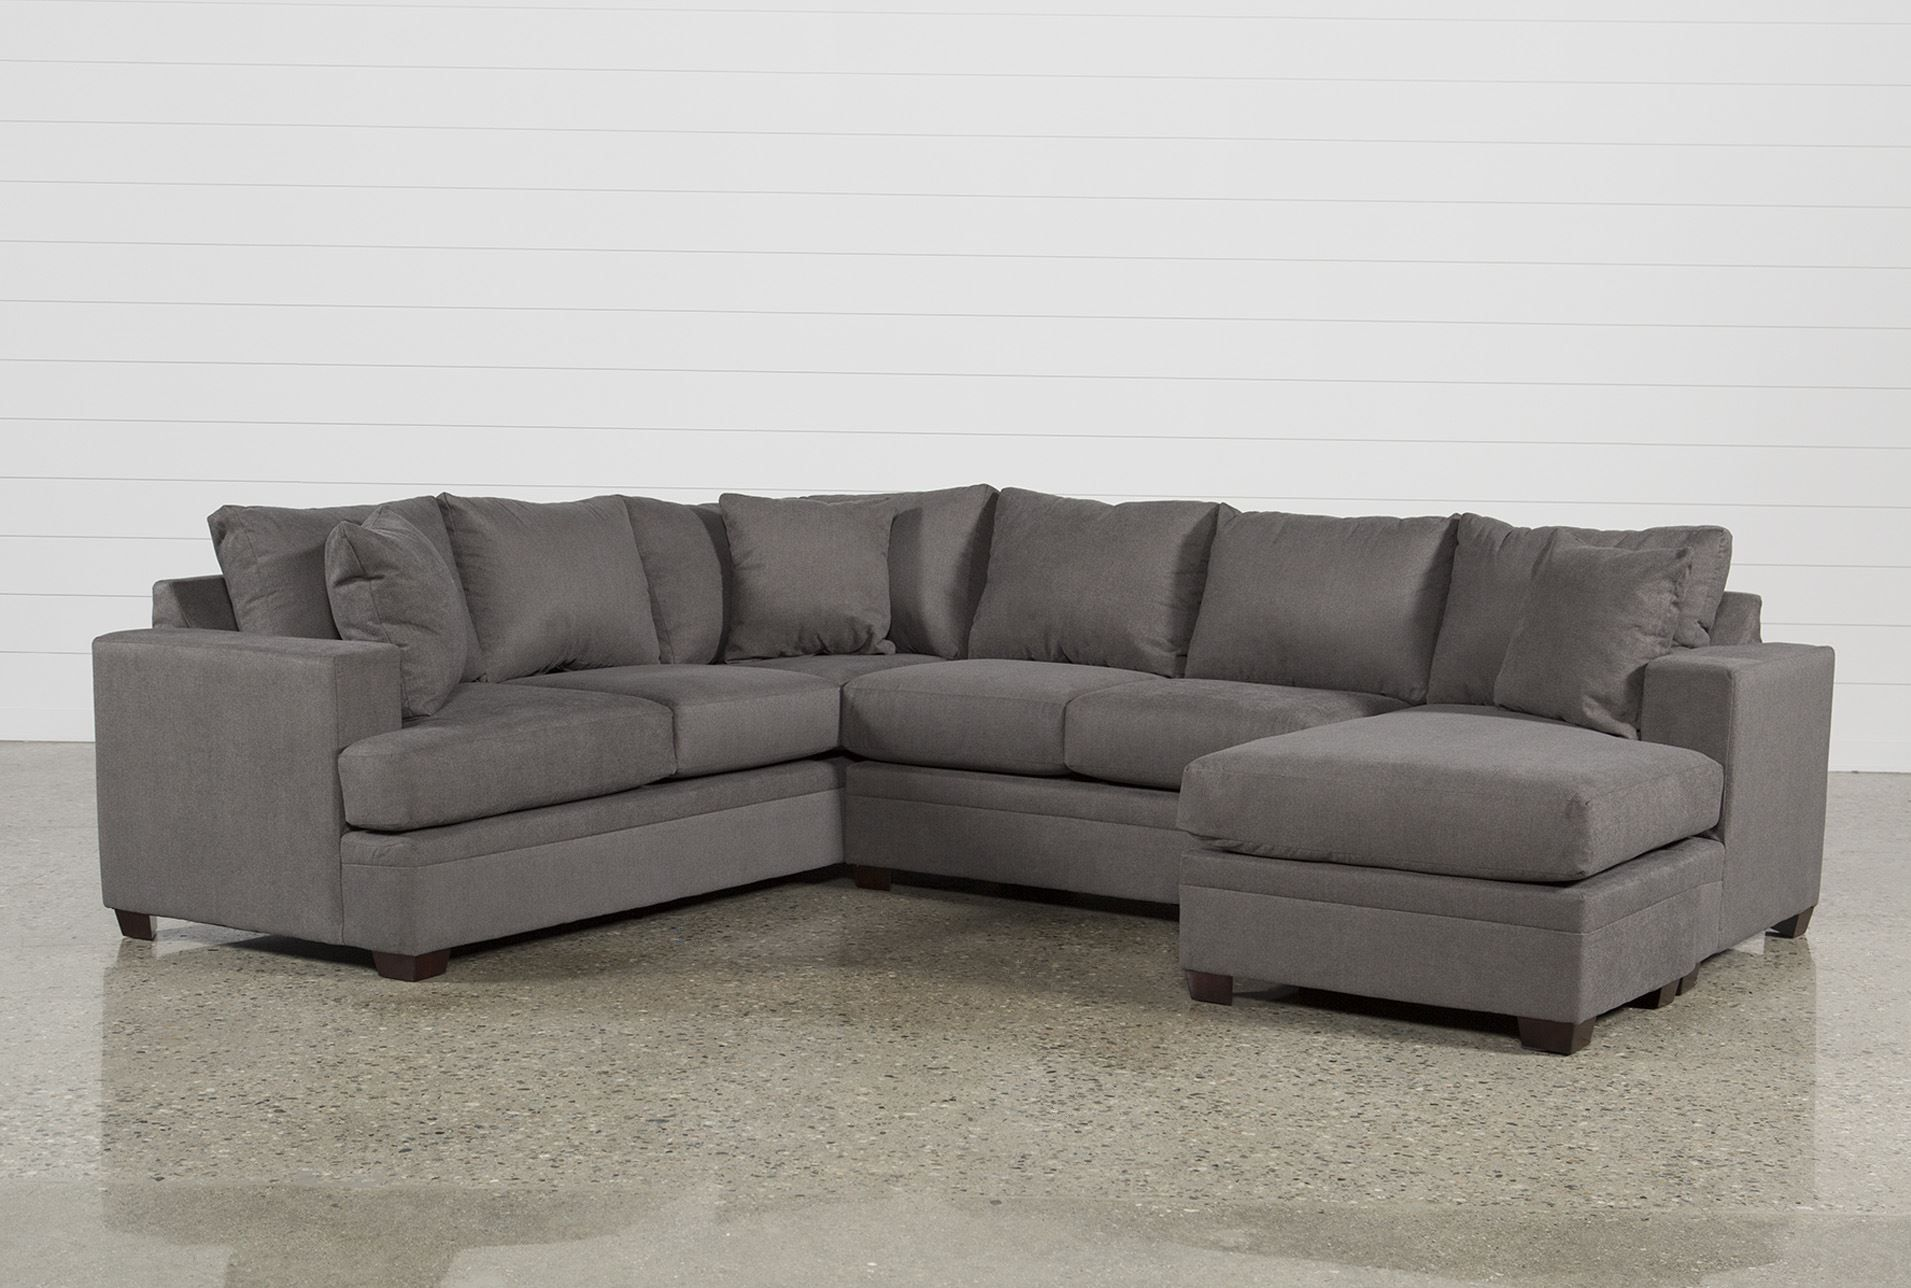 Kerri Charcoal 2 Piece Sectional With Right Arm Facing Chaise Grey Sectional Sofa Grey Sectional Couch Fabric Sectional Sofas